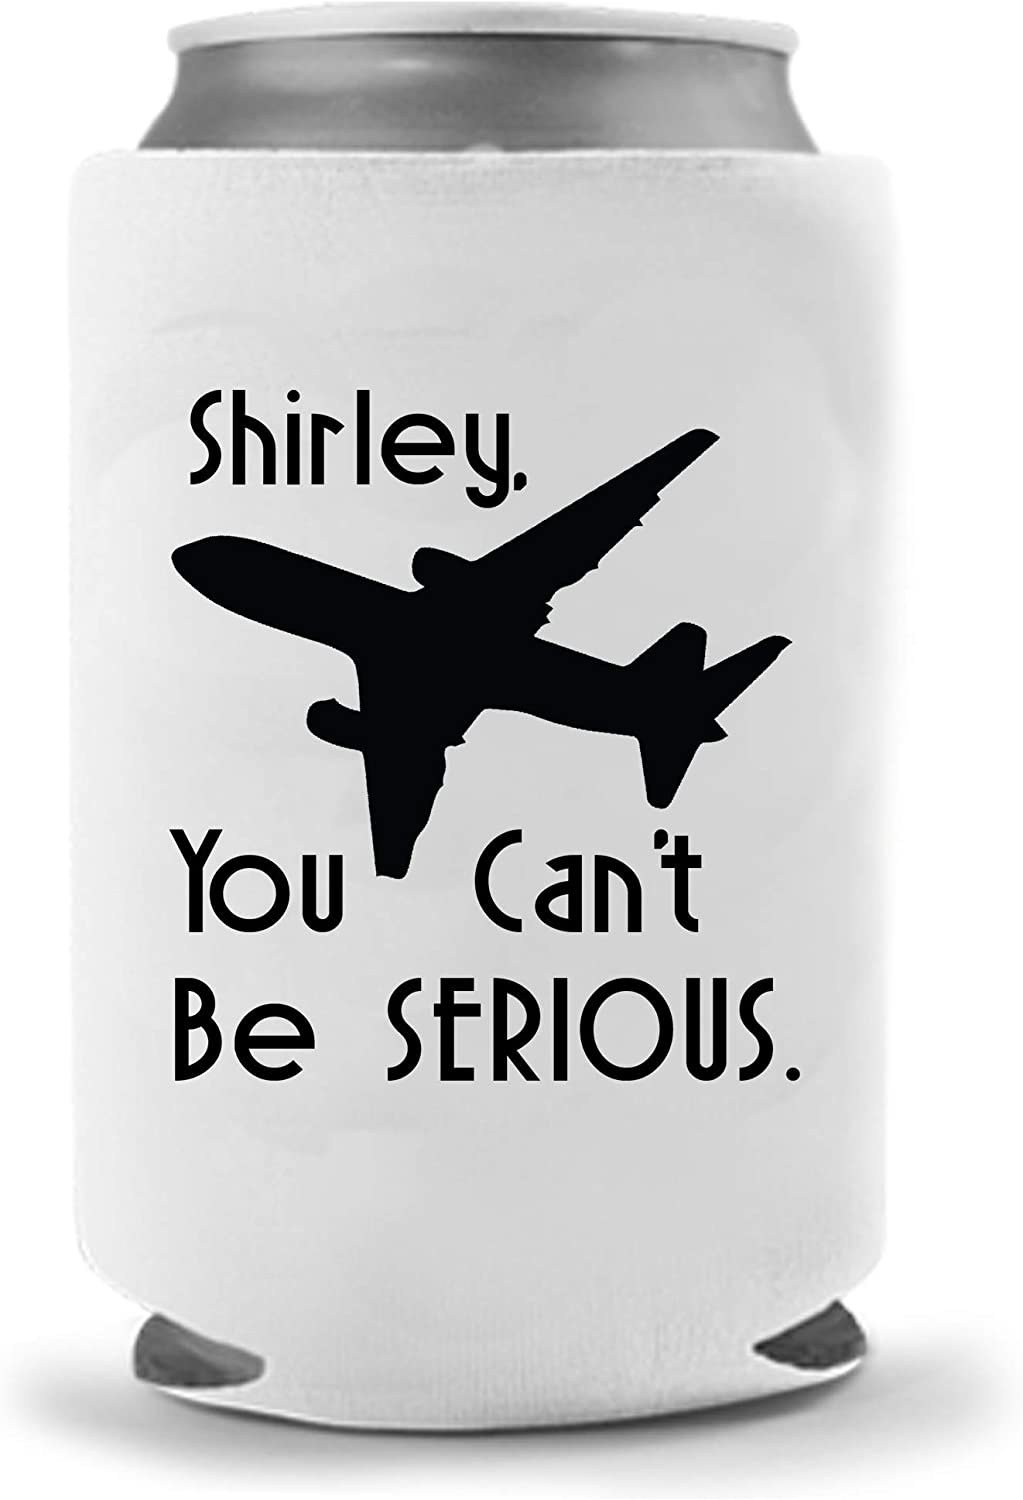 Airplane Movie Coolie - Shirley You Can't Be Serious Party Gift Beer Can Cooler | Funny Joke Drink Can Cooler | Trump Beer Beverage Holder - Beer Gifts Home - Quality Neoprene No Fade Can Cooler